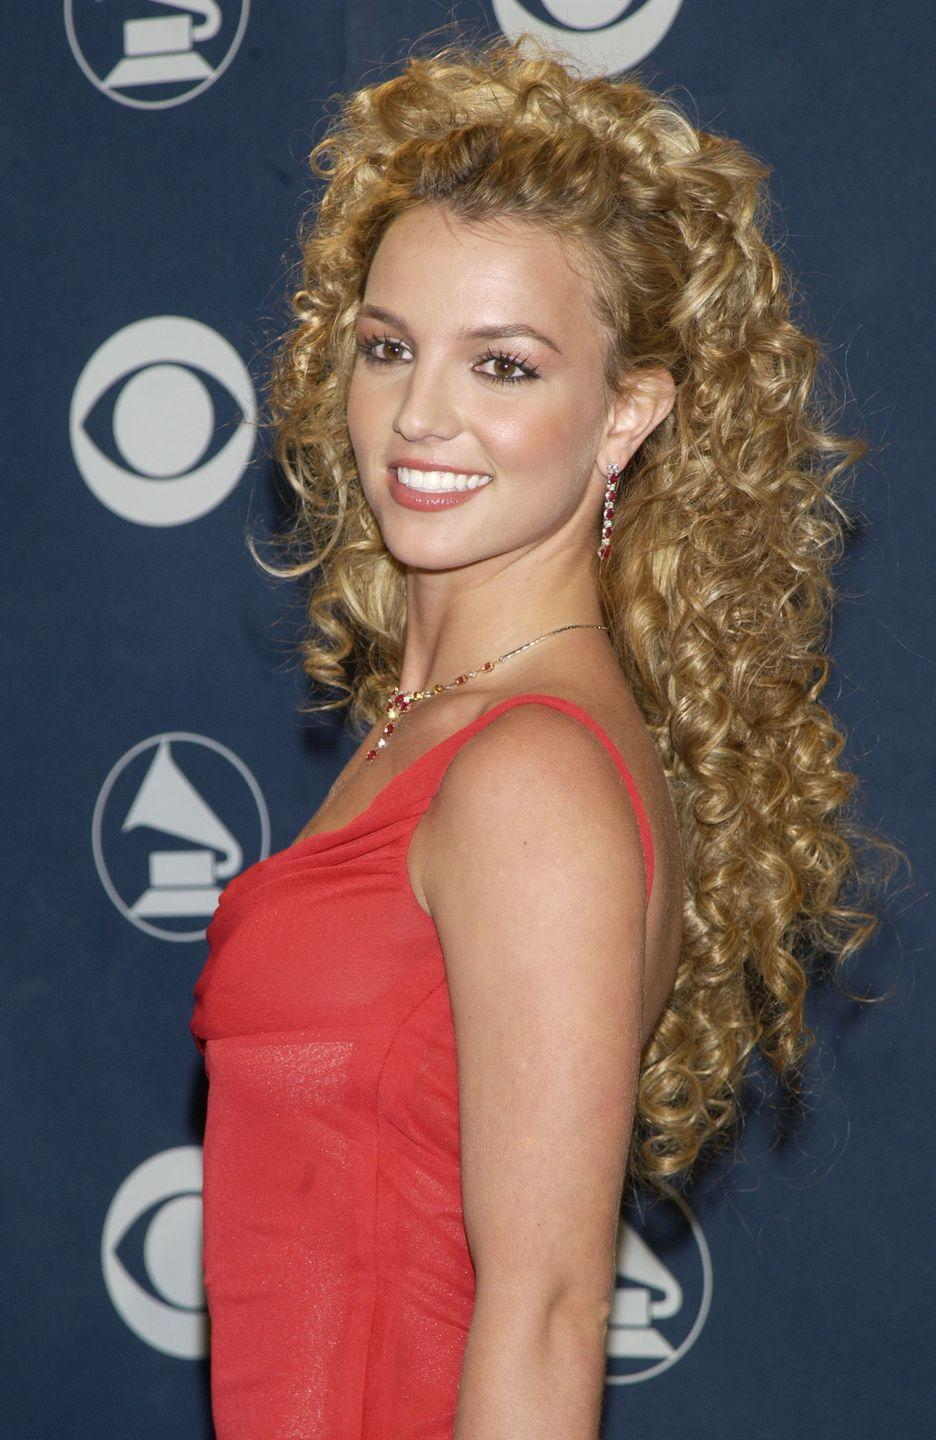 <p>Was Britney going to the Grammys or prom? Your guess is as good as mine. So. Many. Curls.</p>